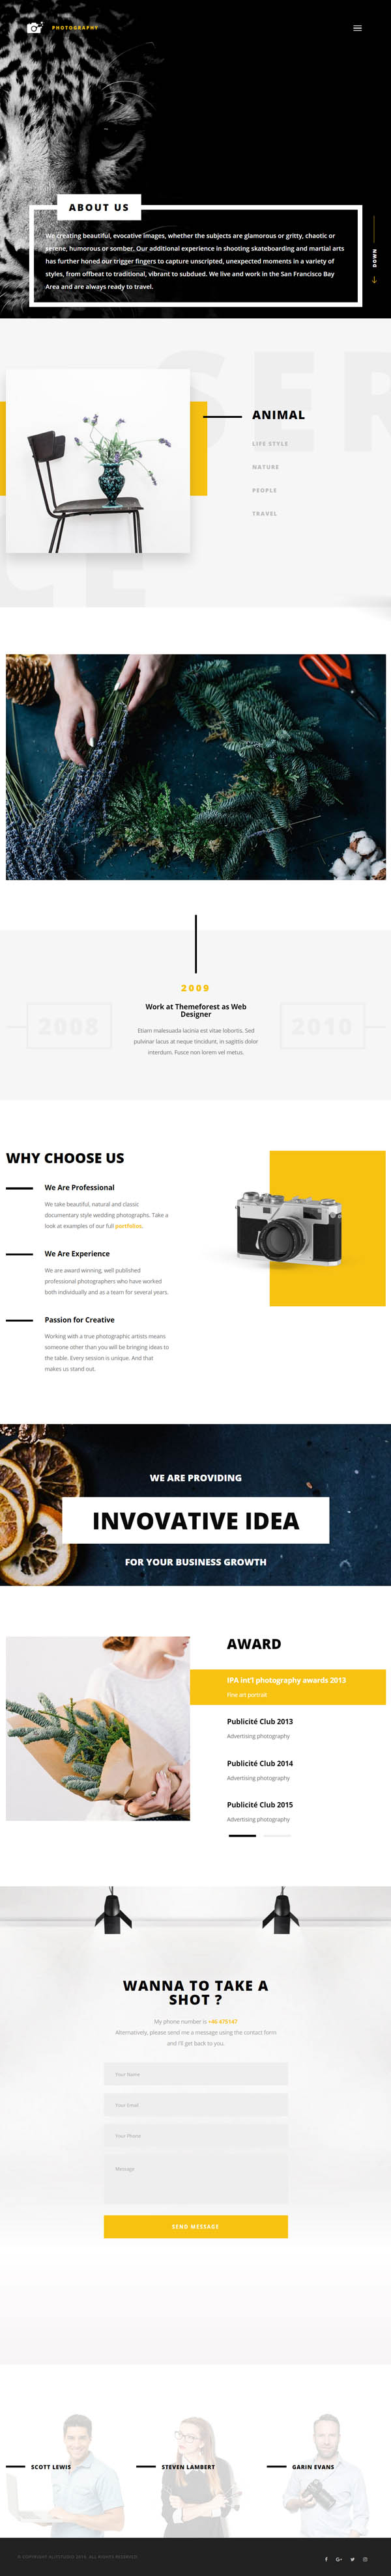 Cephenus – Photography, Portfolio & Gallery WordPress Theme